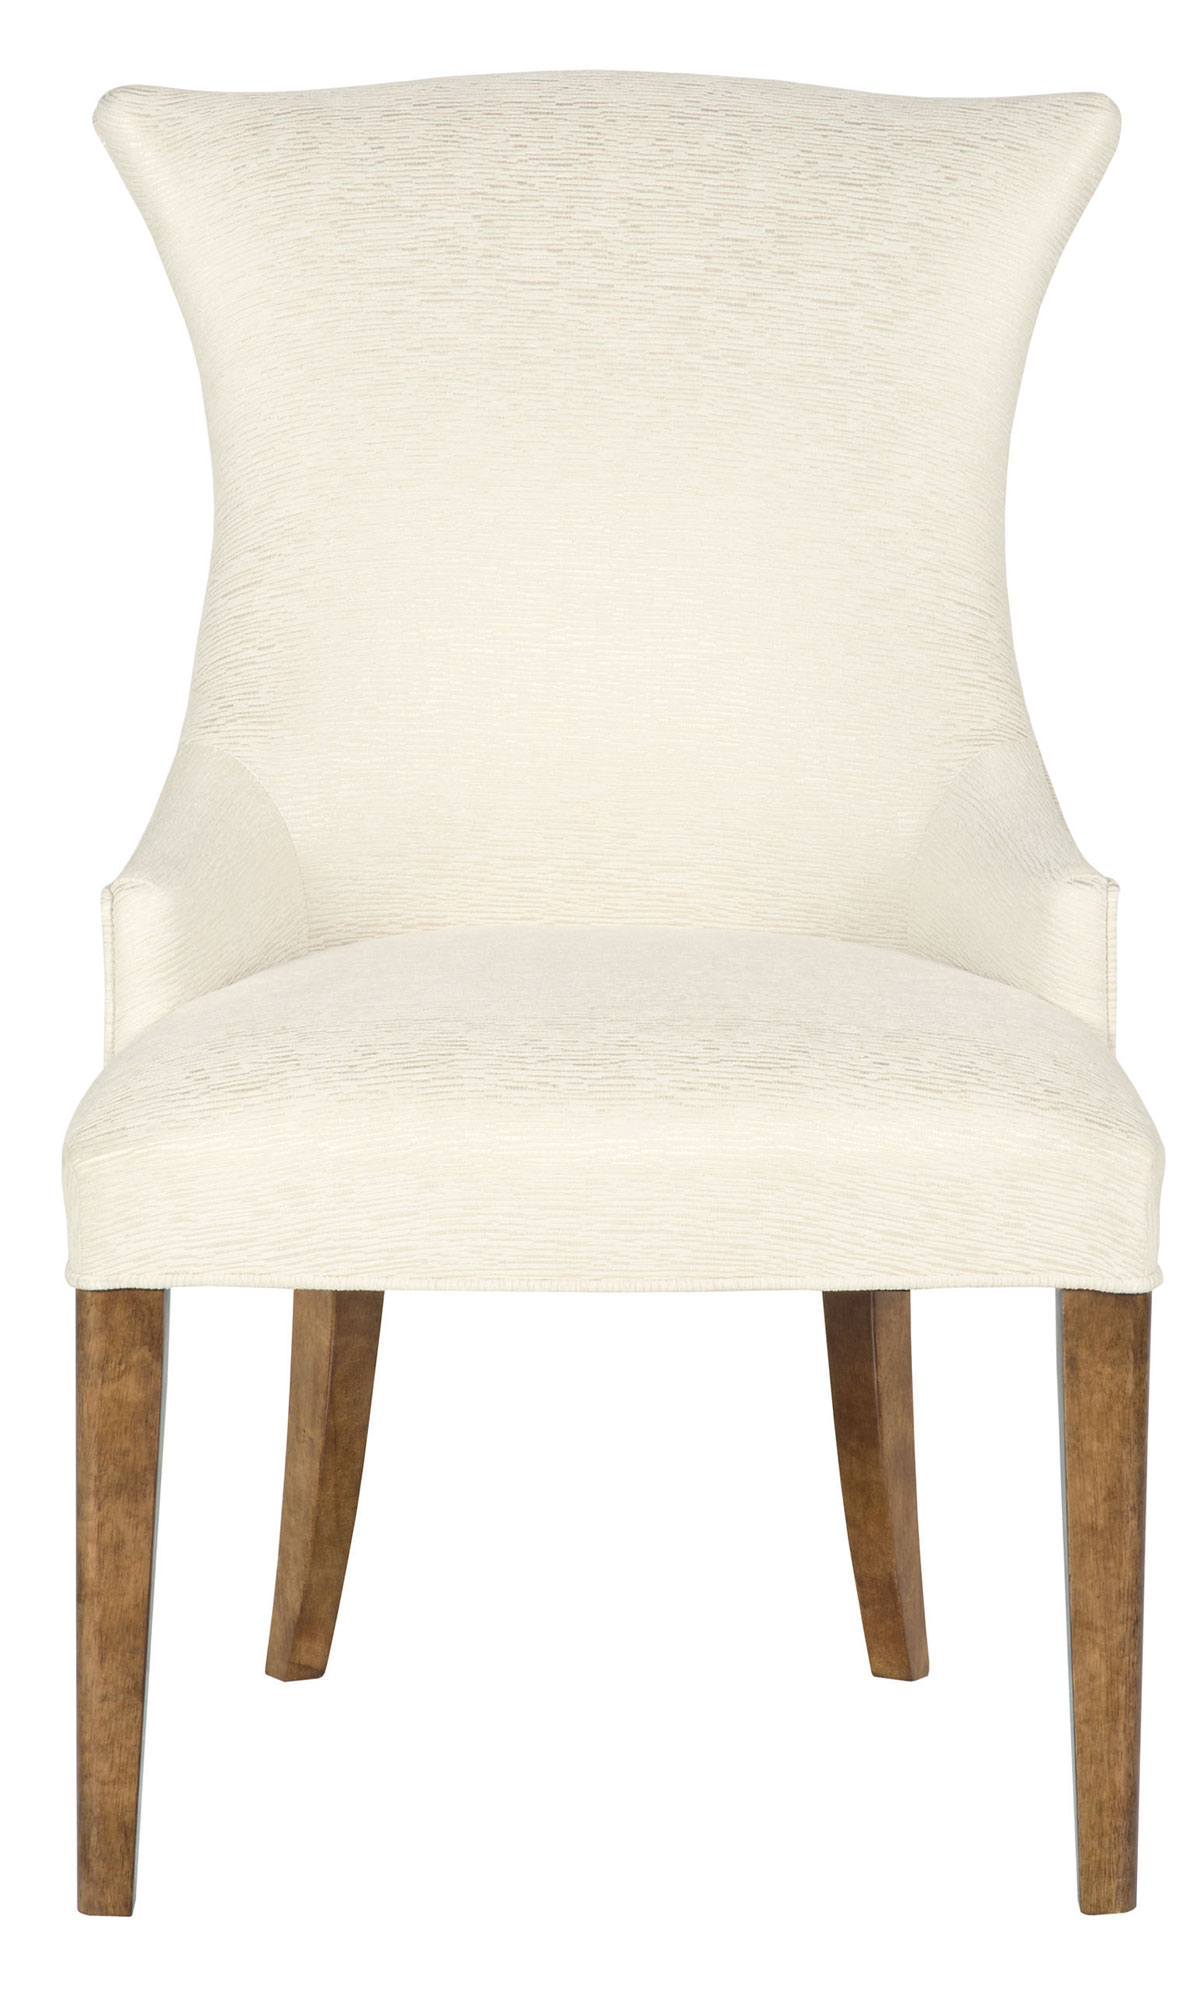 Upholstered arm chair bernhardt for Upholstered dining chairs with arms